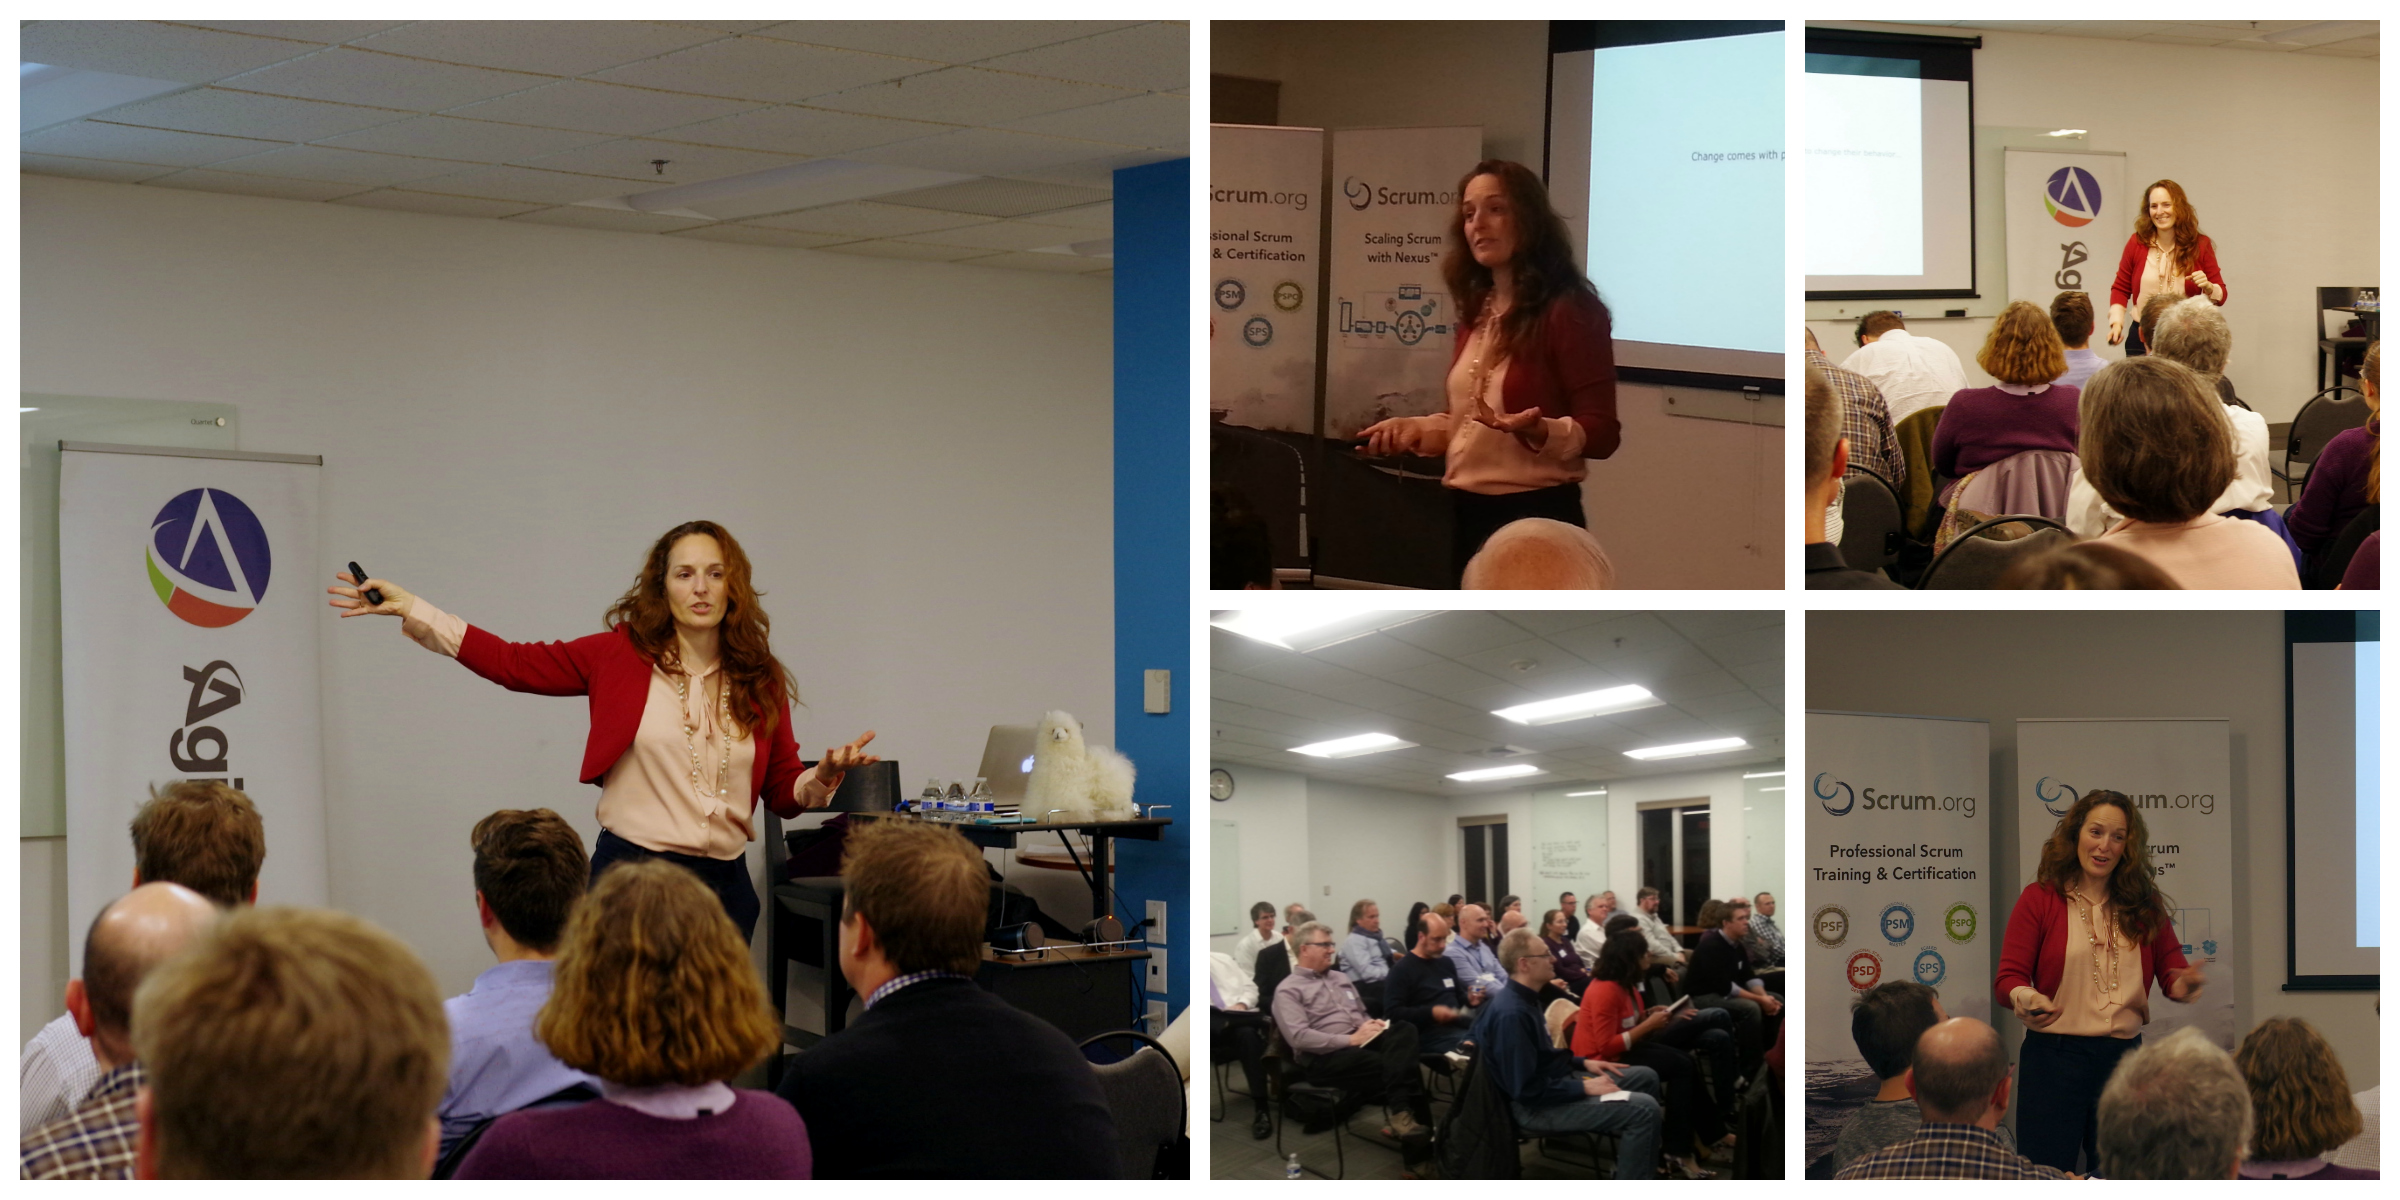 Kara Minotti Becker presents at Agile Boston